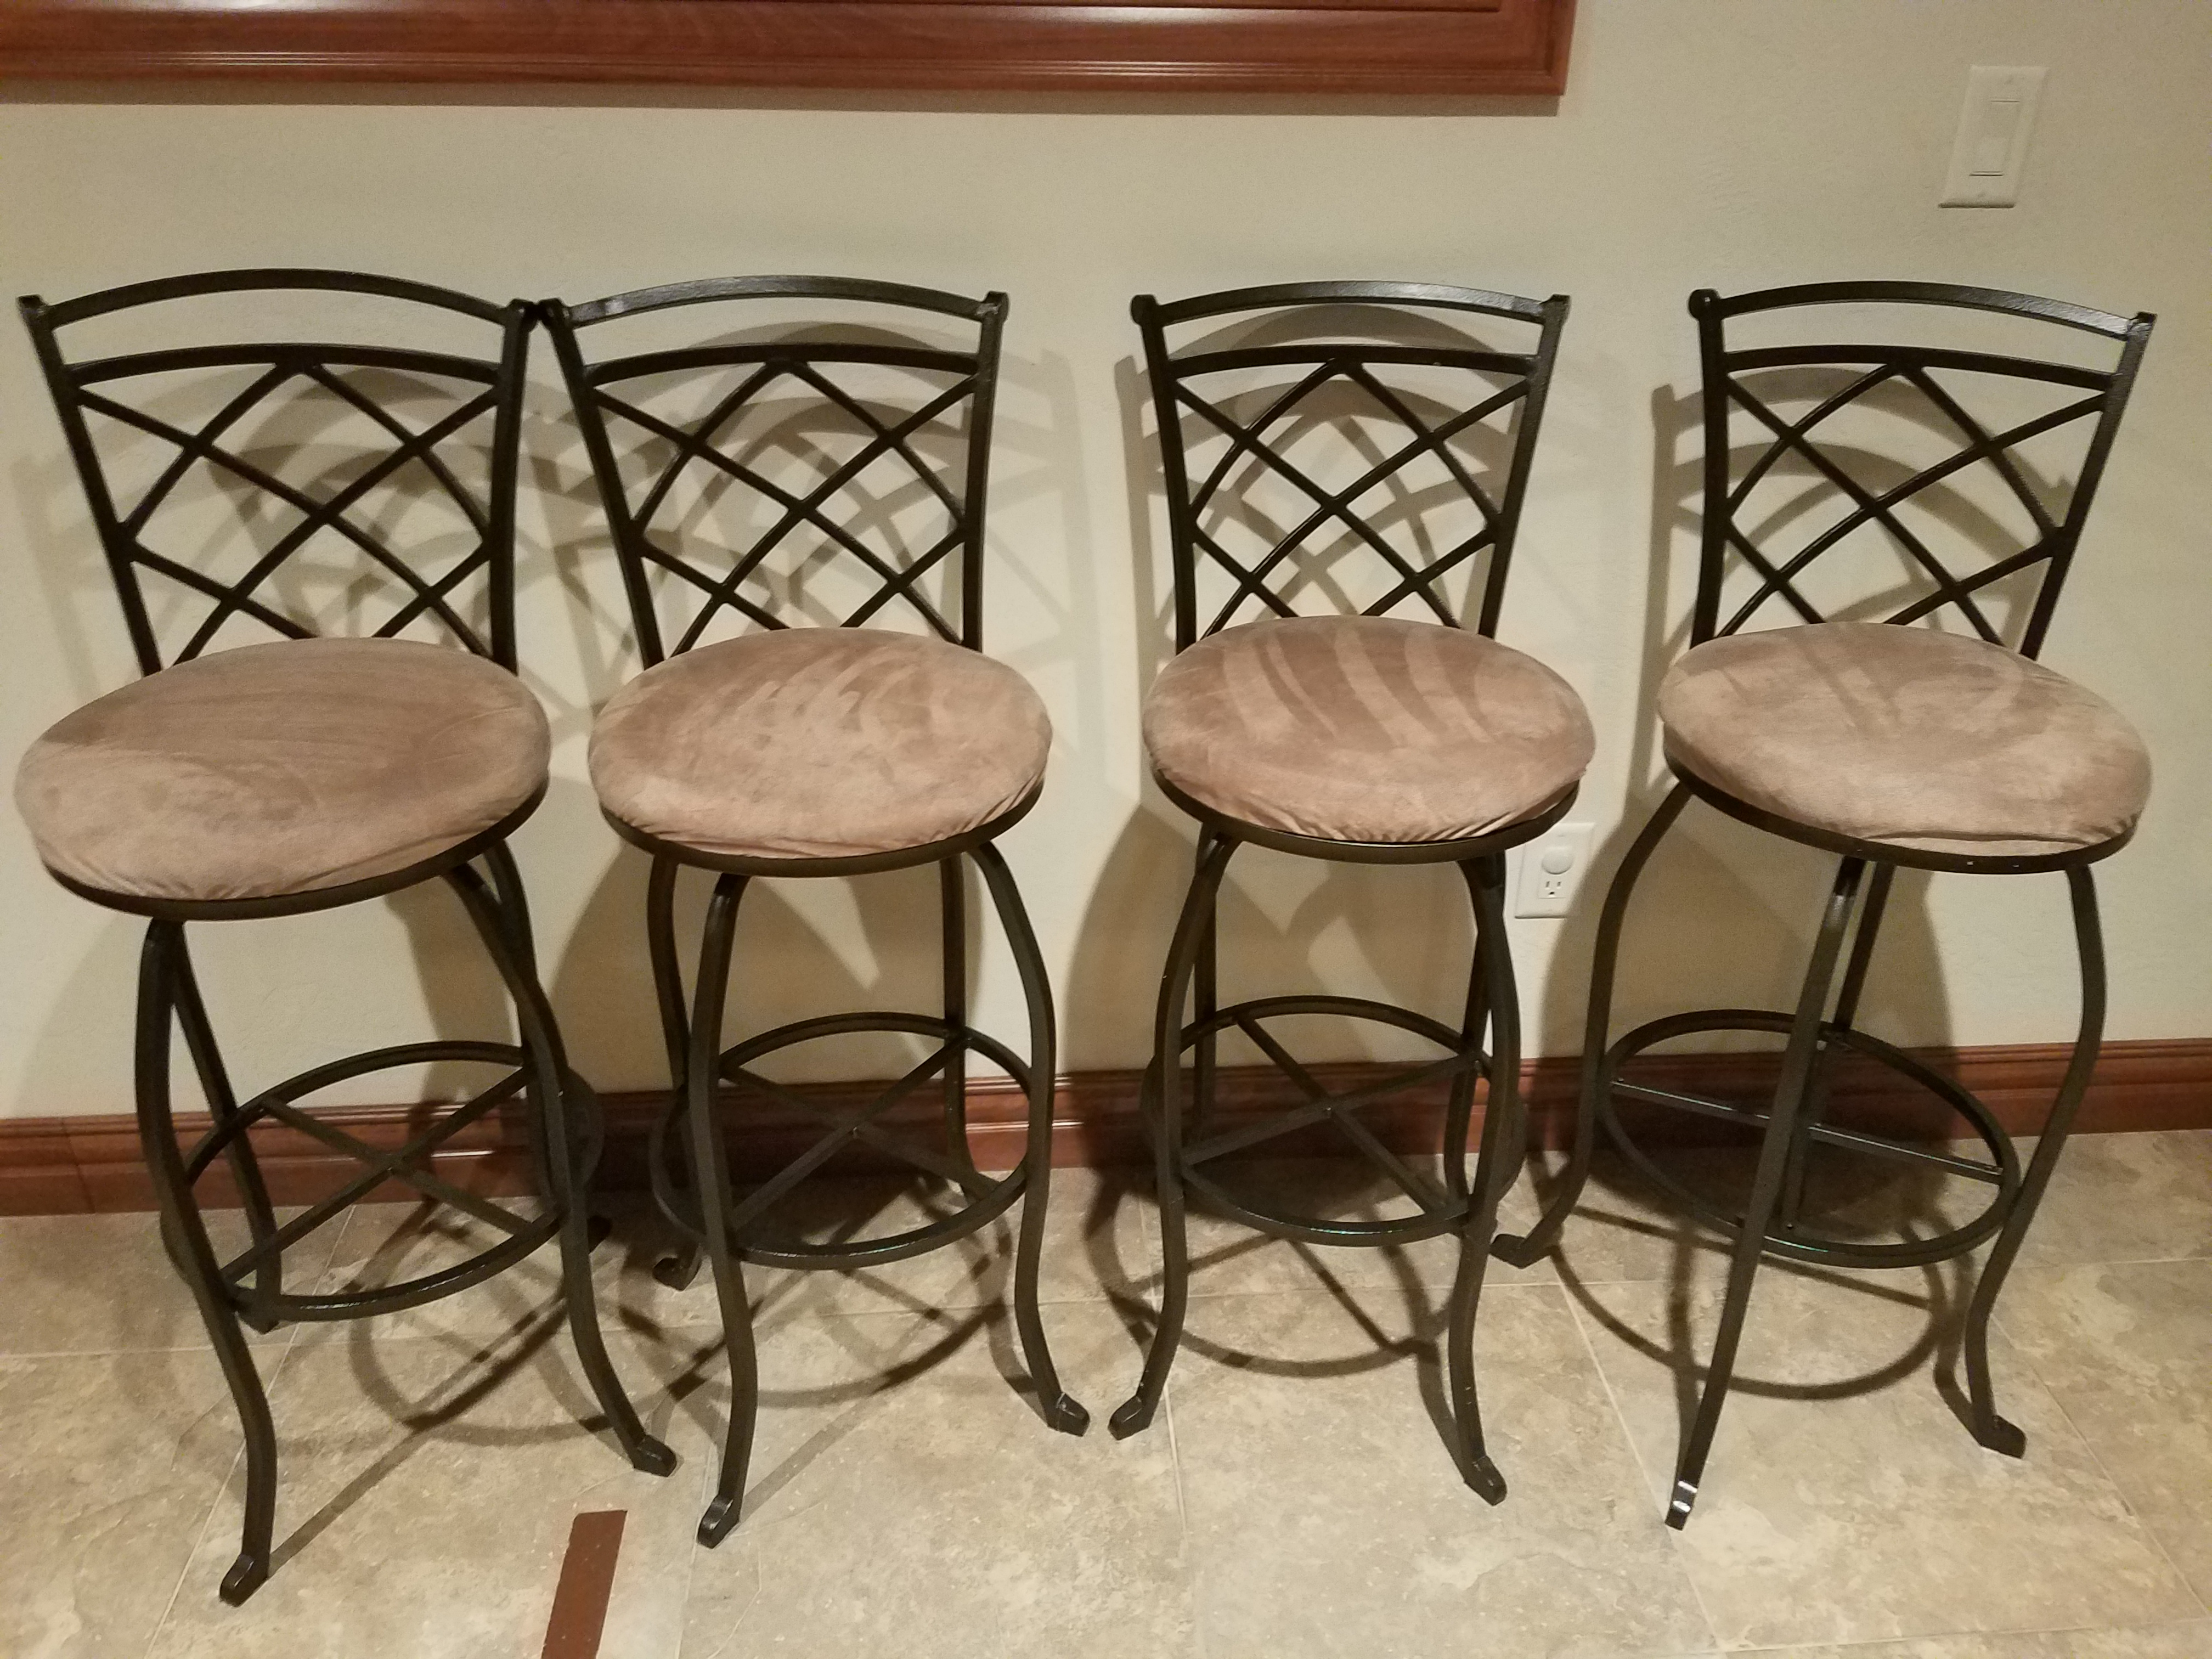 4 bar stools $75 for all